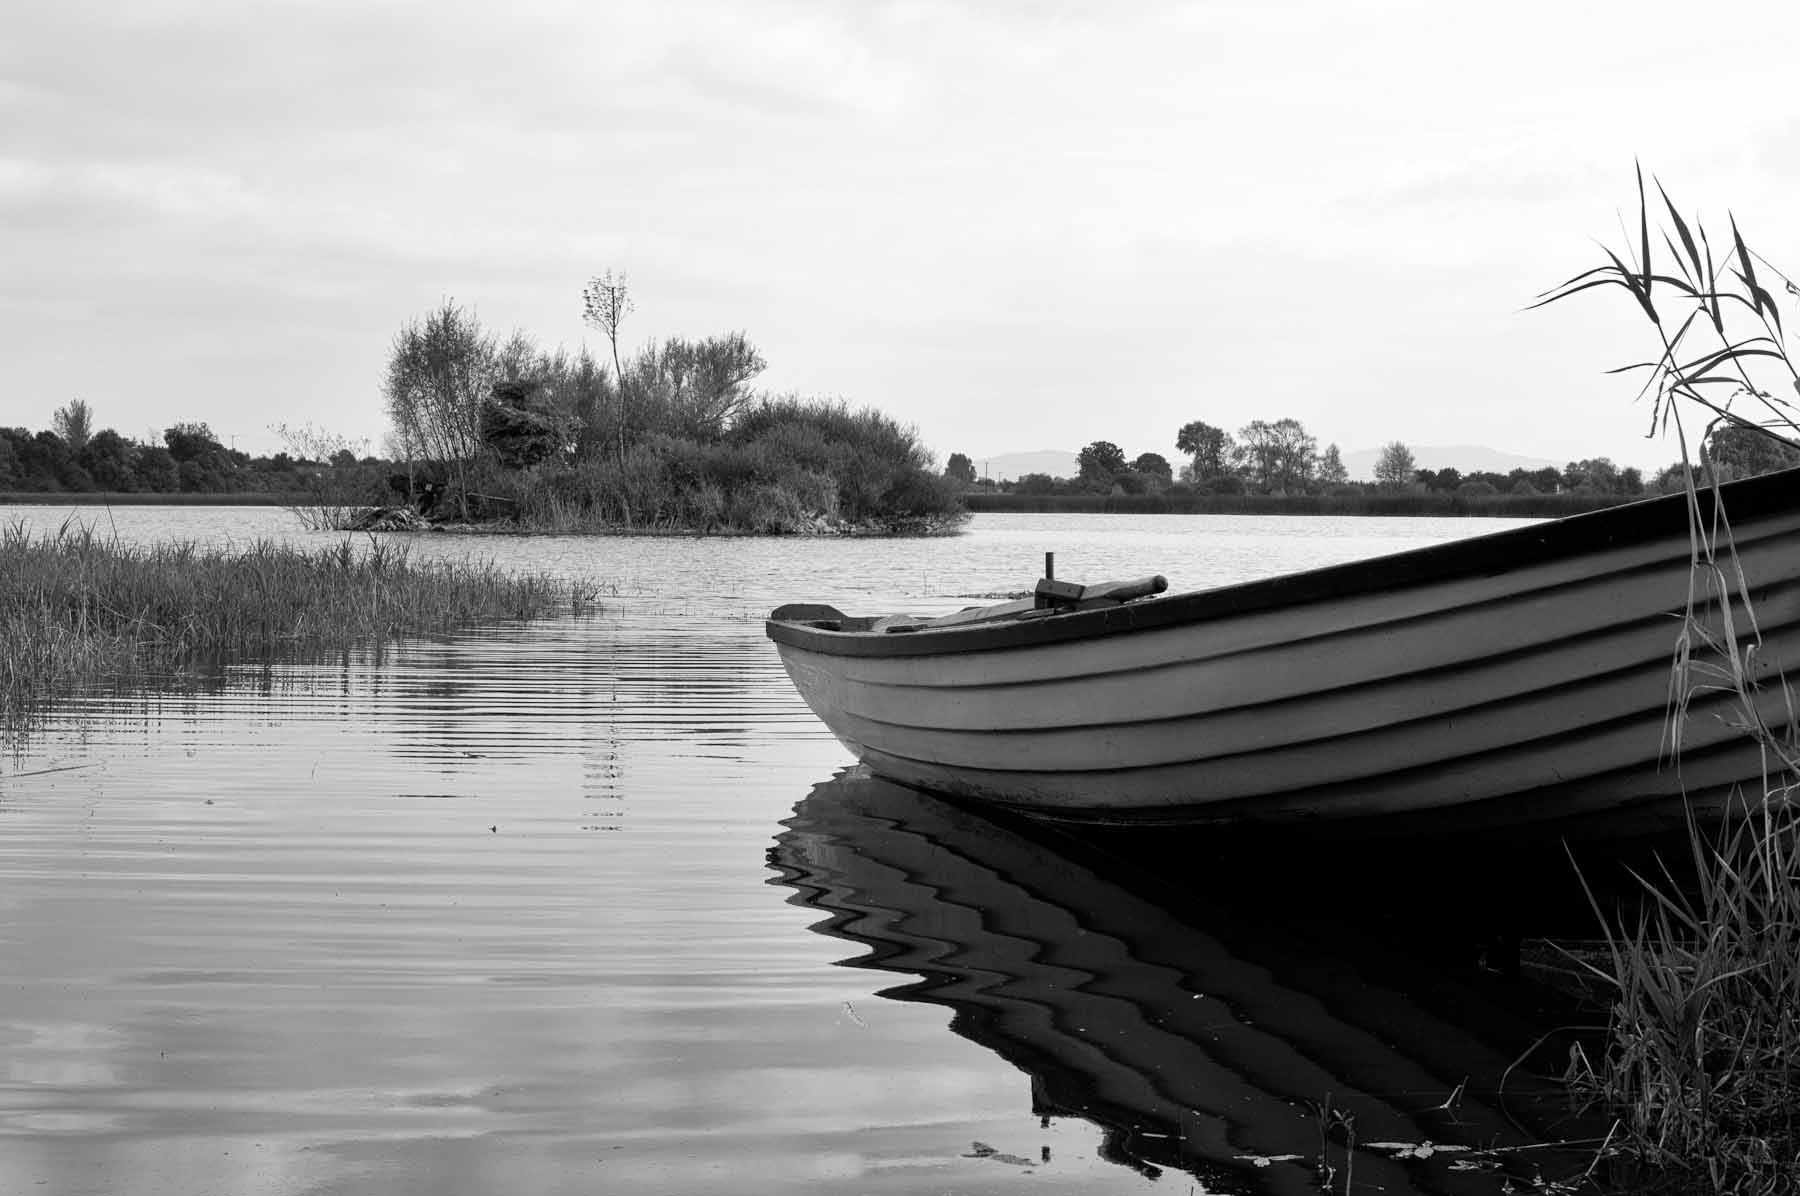 Boat at the Edge of a Lake in Southern Ireland in 2009